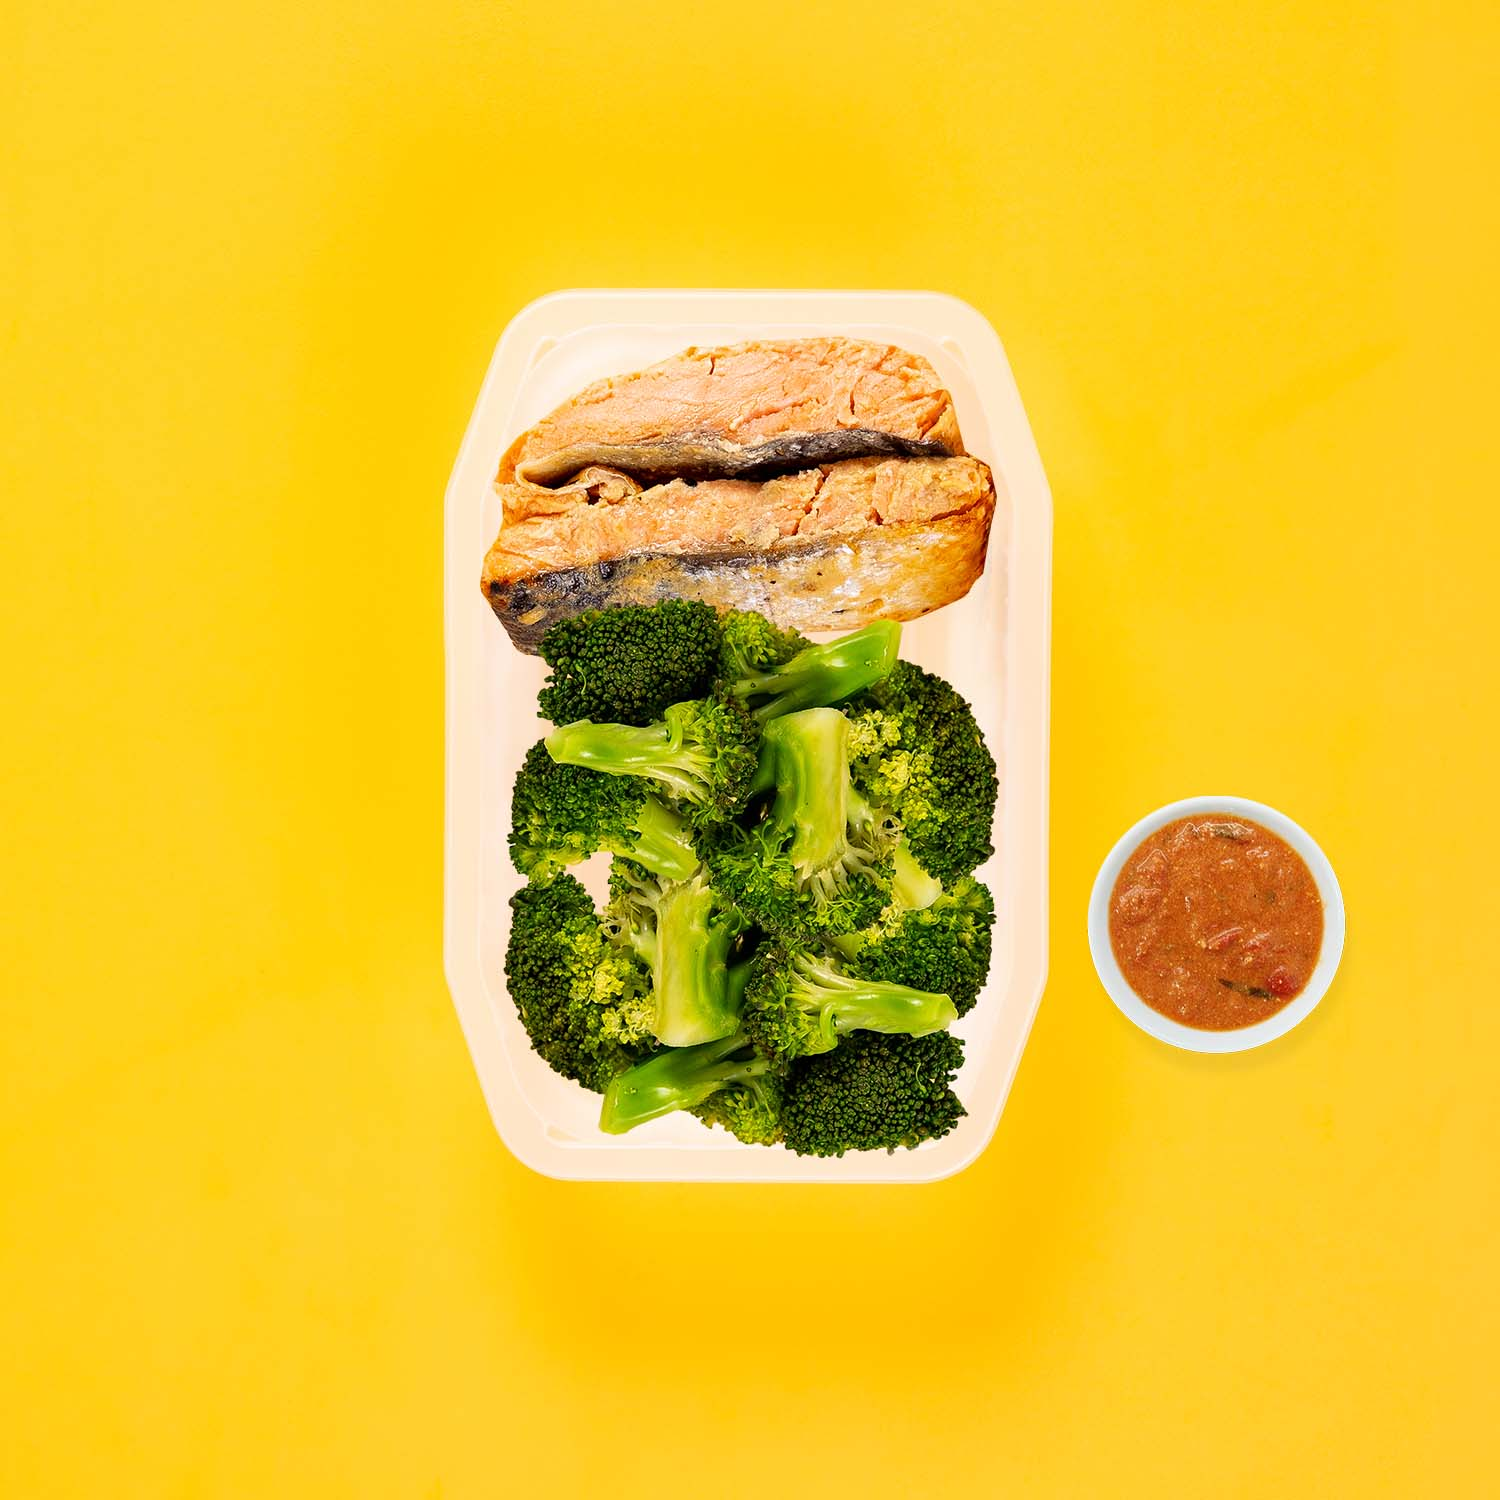 50g Miso Salmon 50g Broccoli 50g Broccoli Thai Red Curry